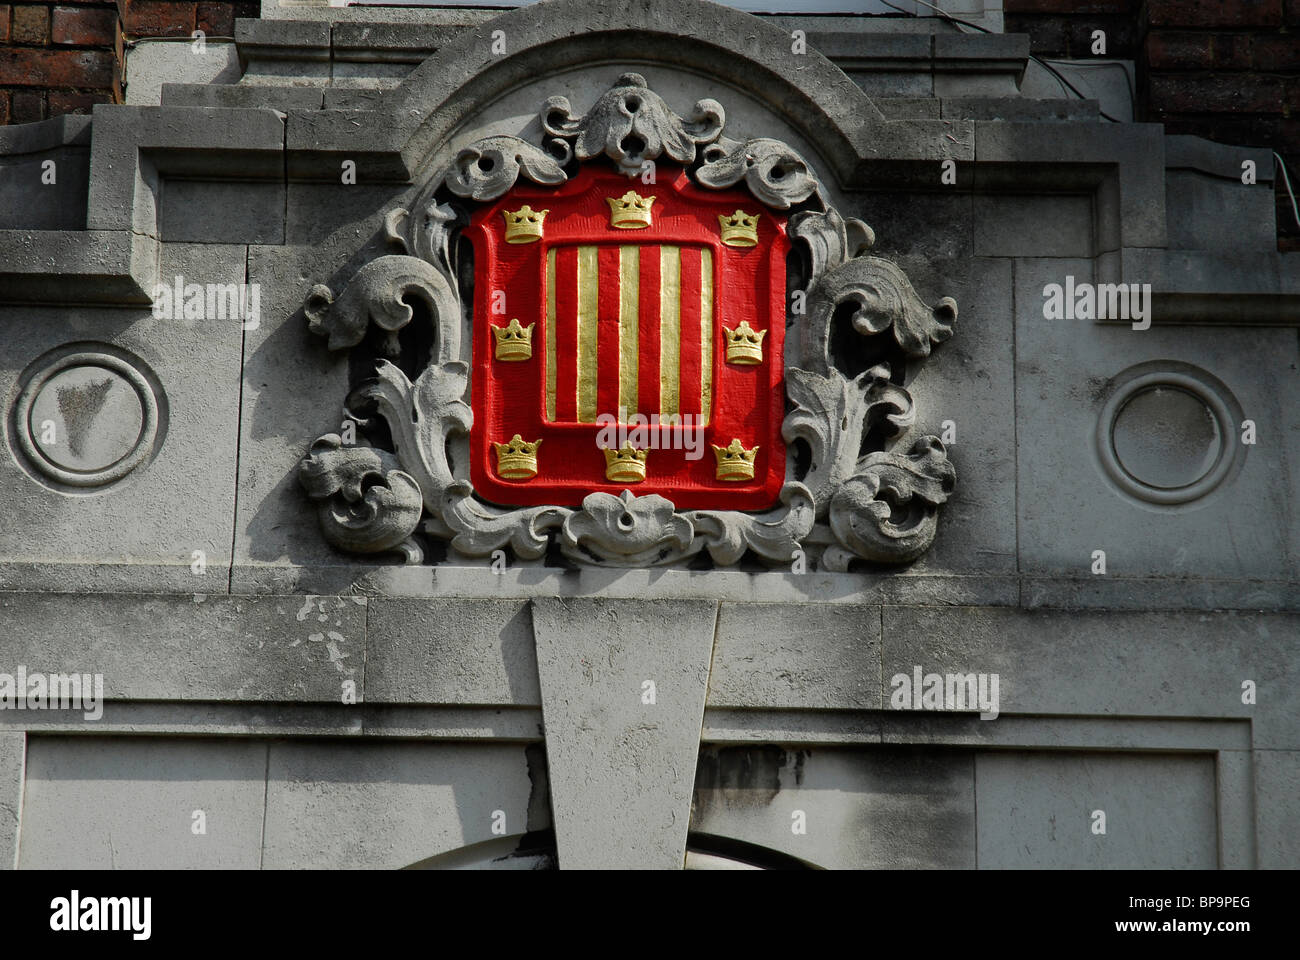 Peterhouse College crest in the university city of Cambridge - Stock Image